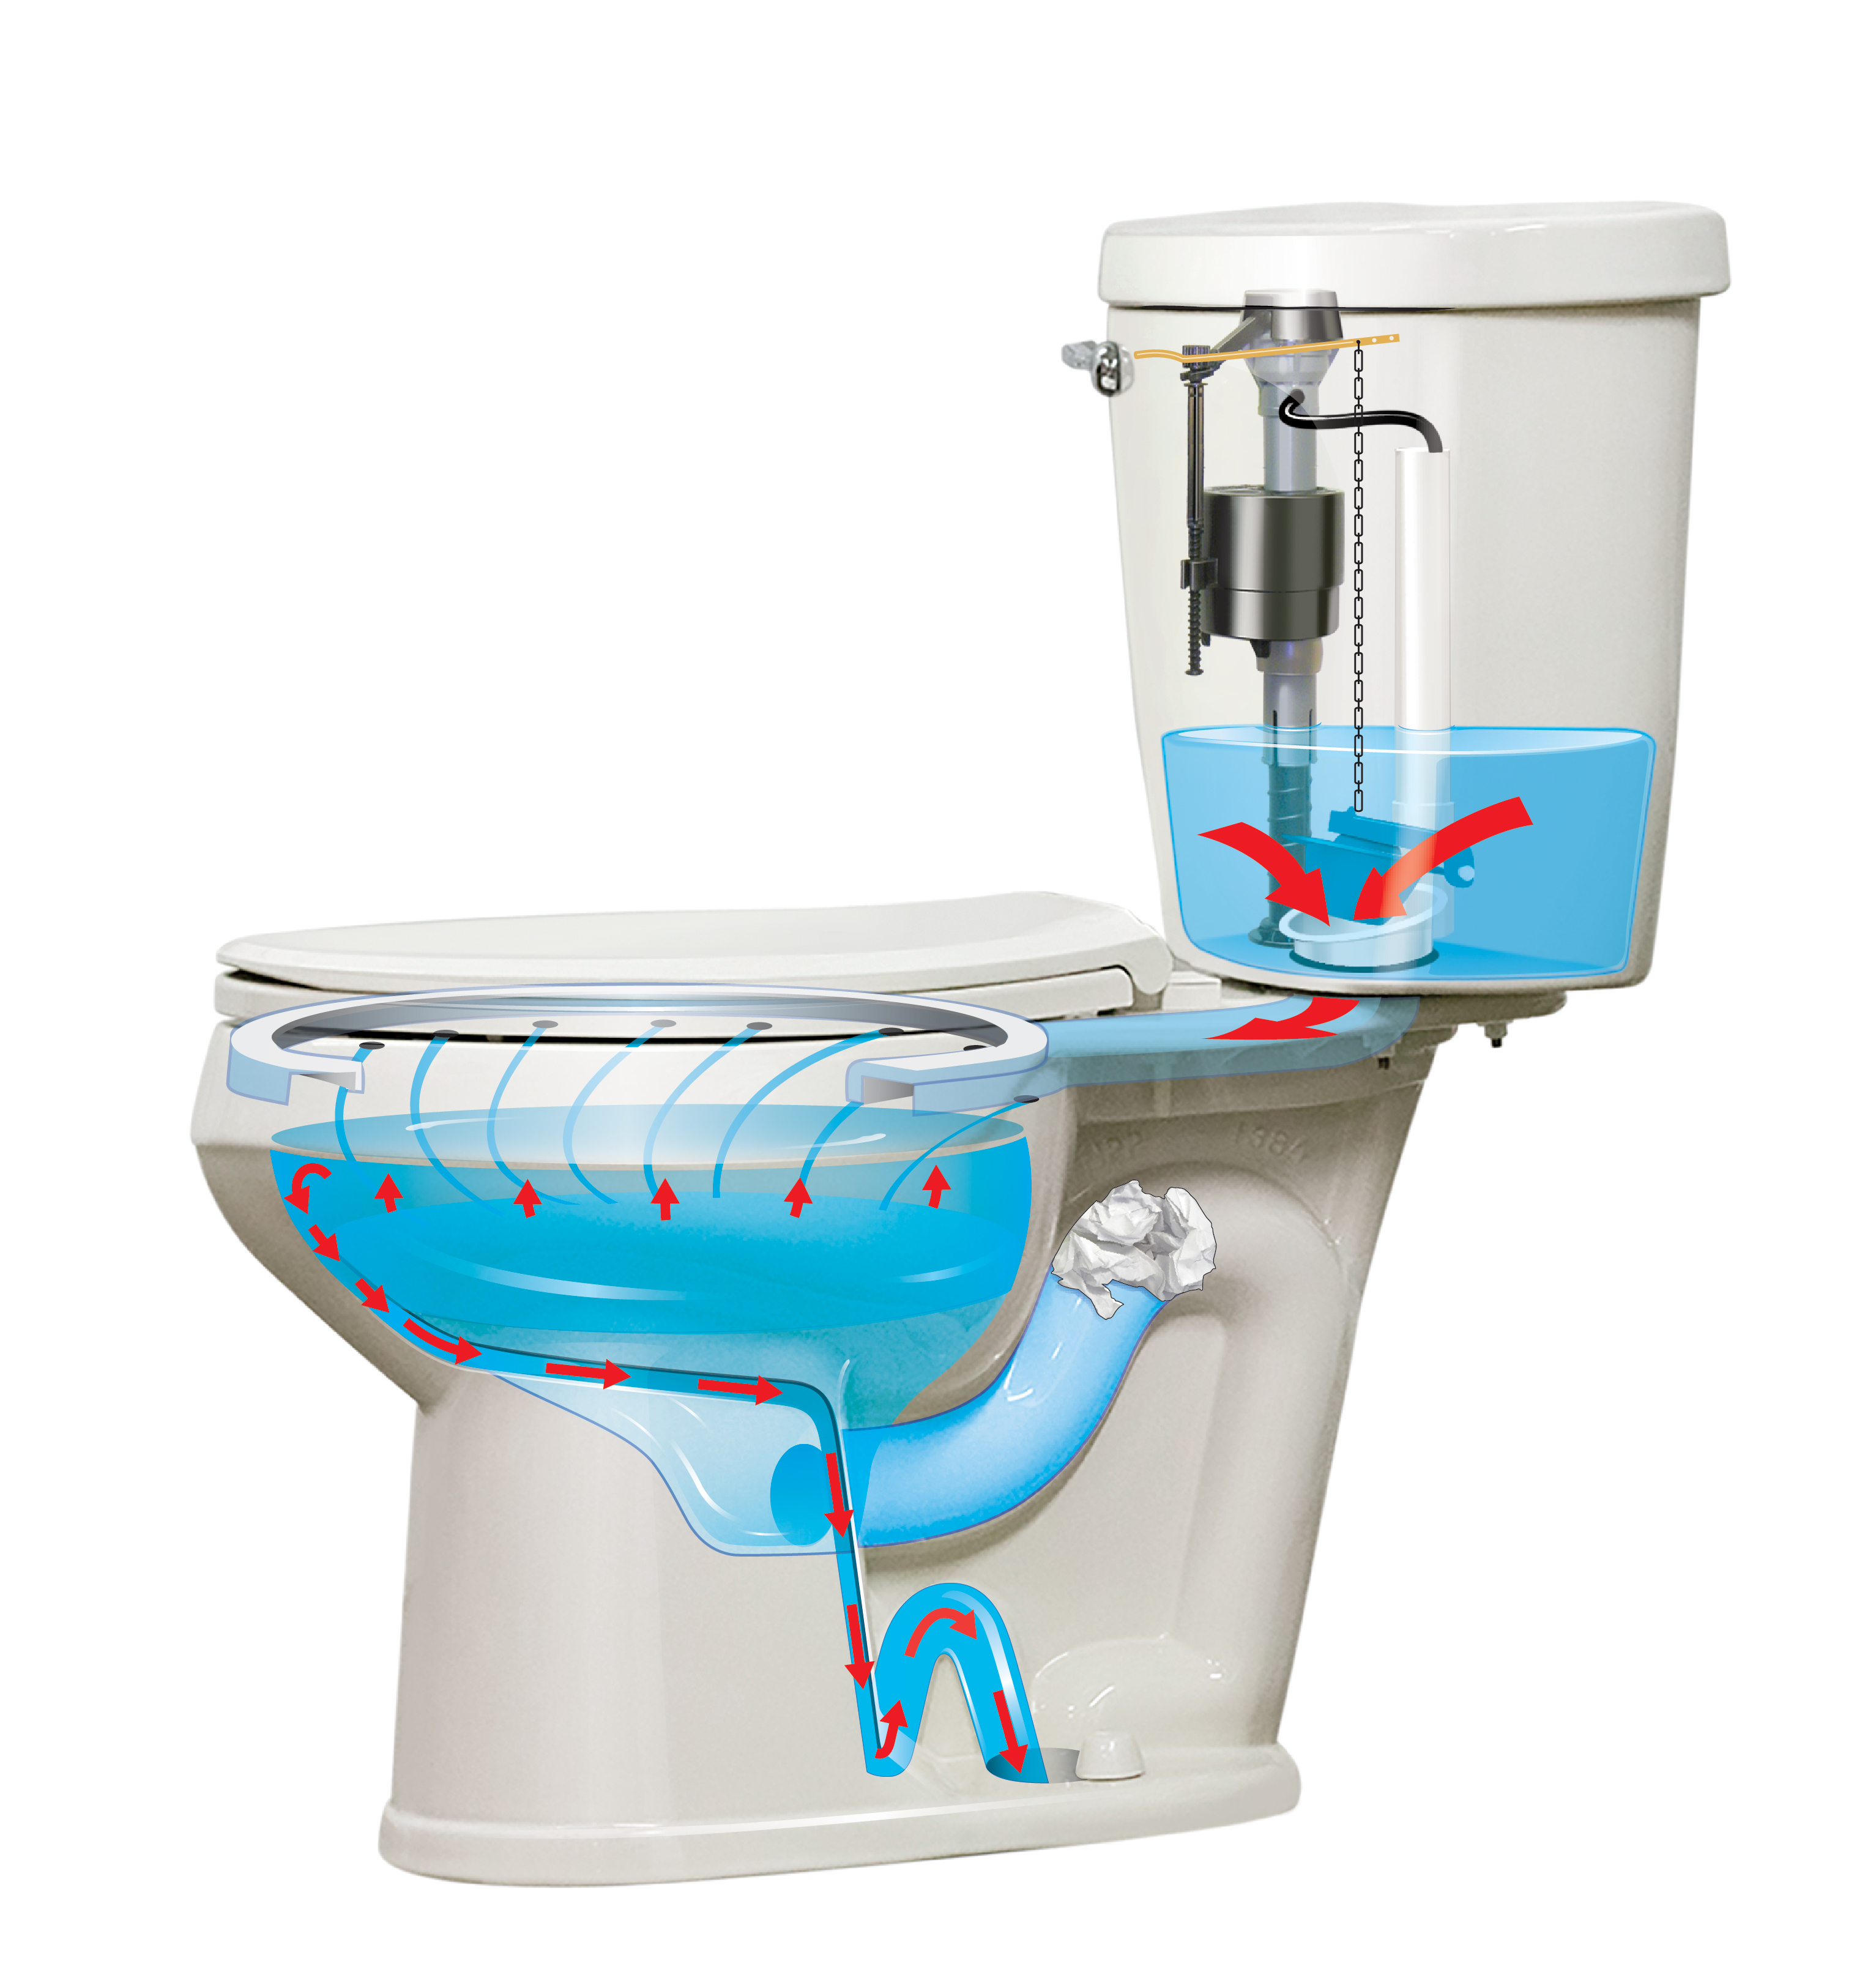 New PROTECTOR® No-Overflow Toilet Introduced by Mansfield Plumbing